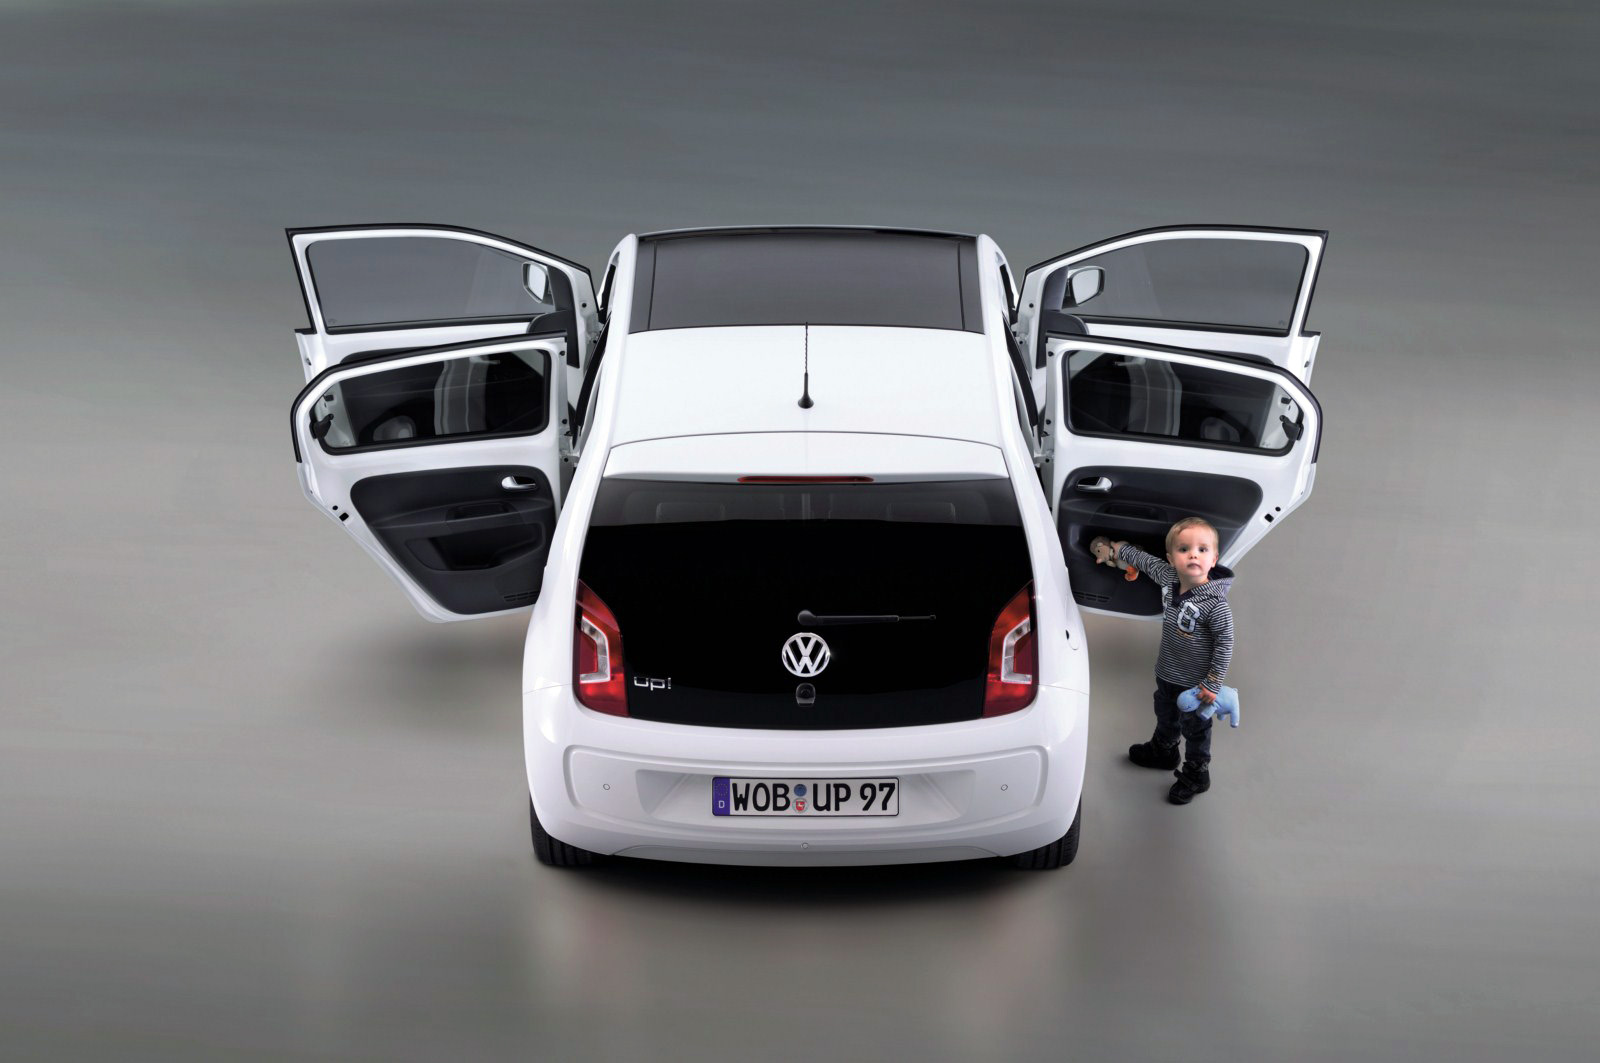 Five door vw up official photos garage car for 1 5 car garage door